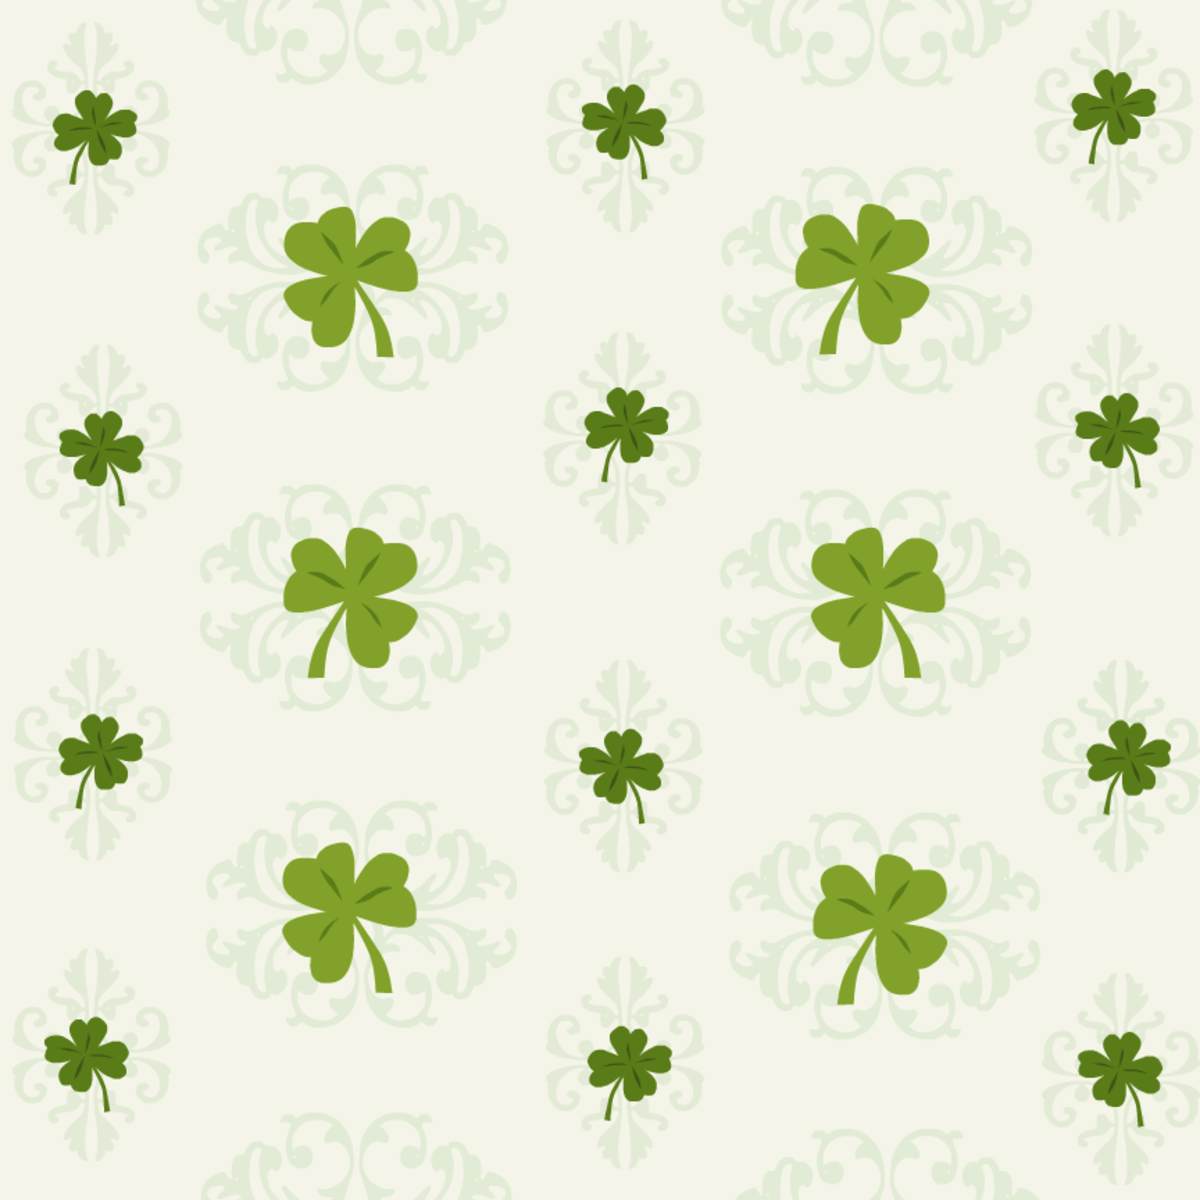 Free St. Patrick's Day scrapbook papers: Green shamrocks and scrollwork on an ivory background